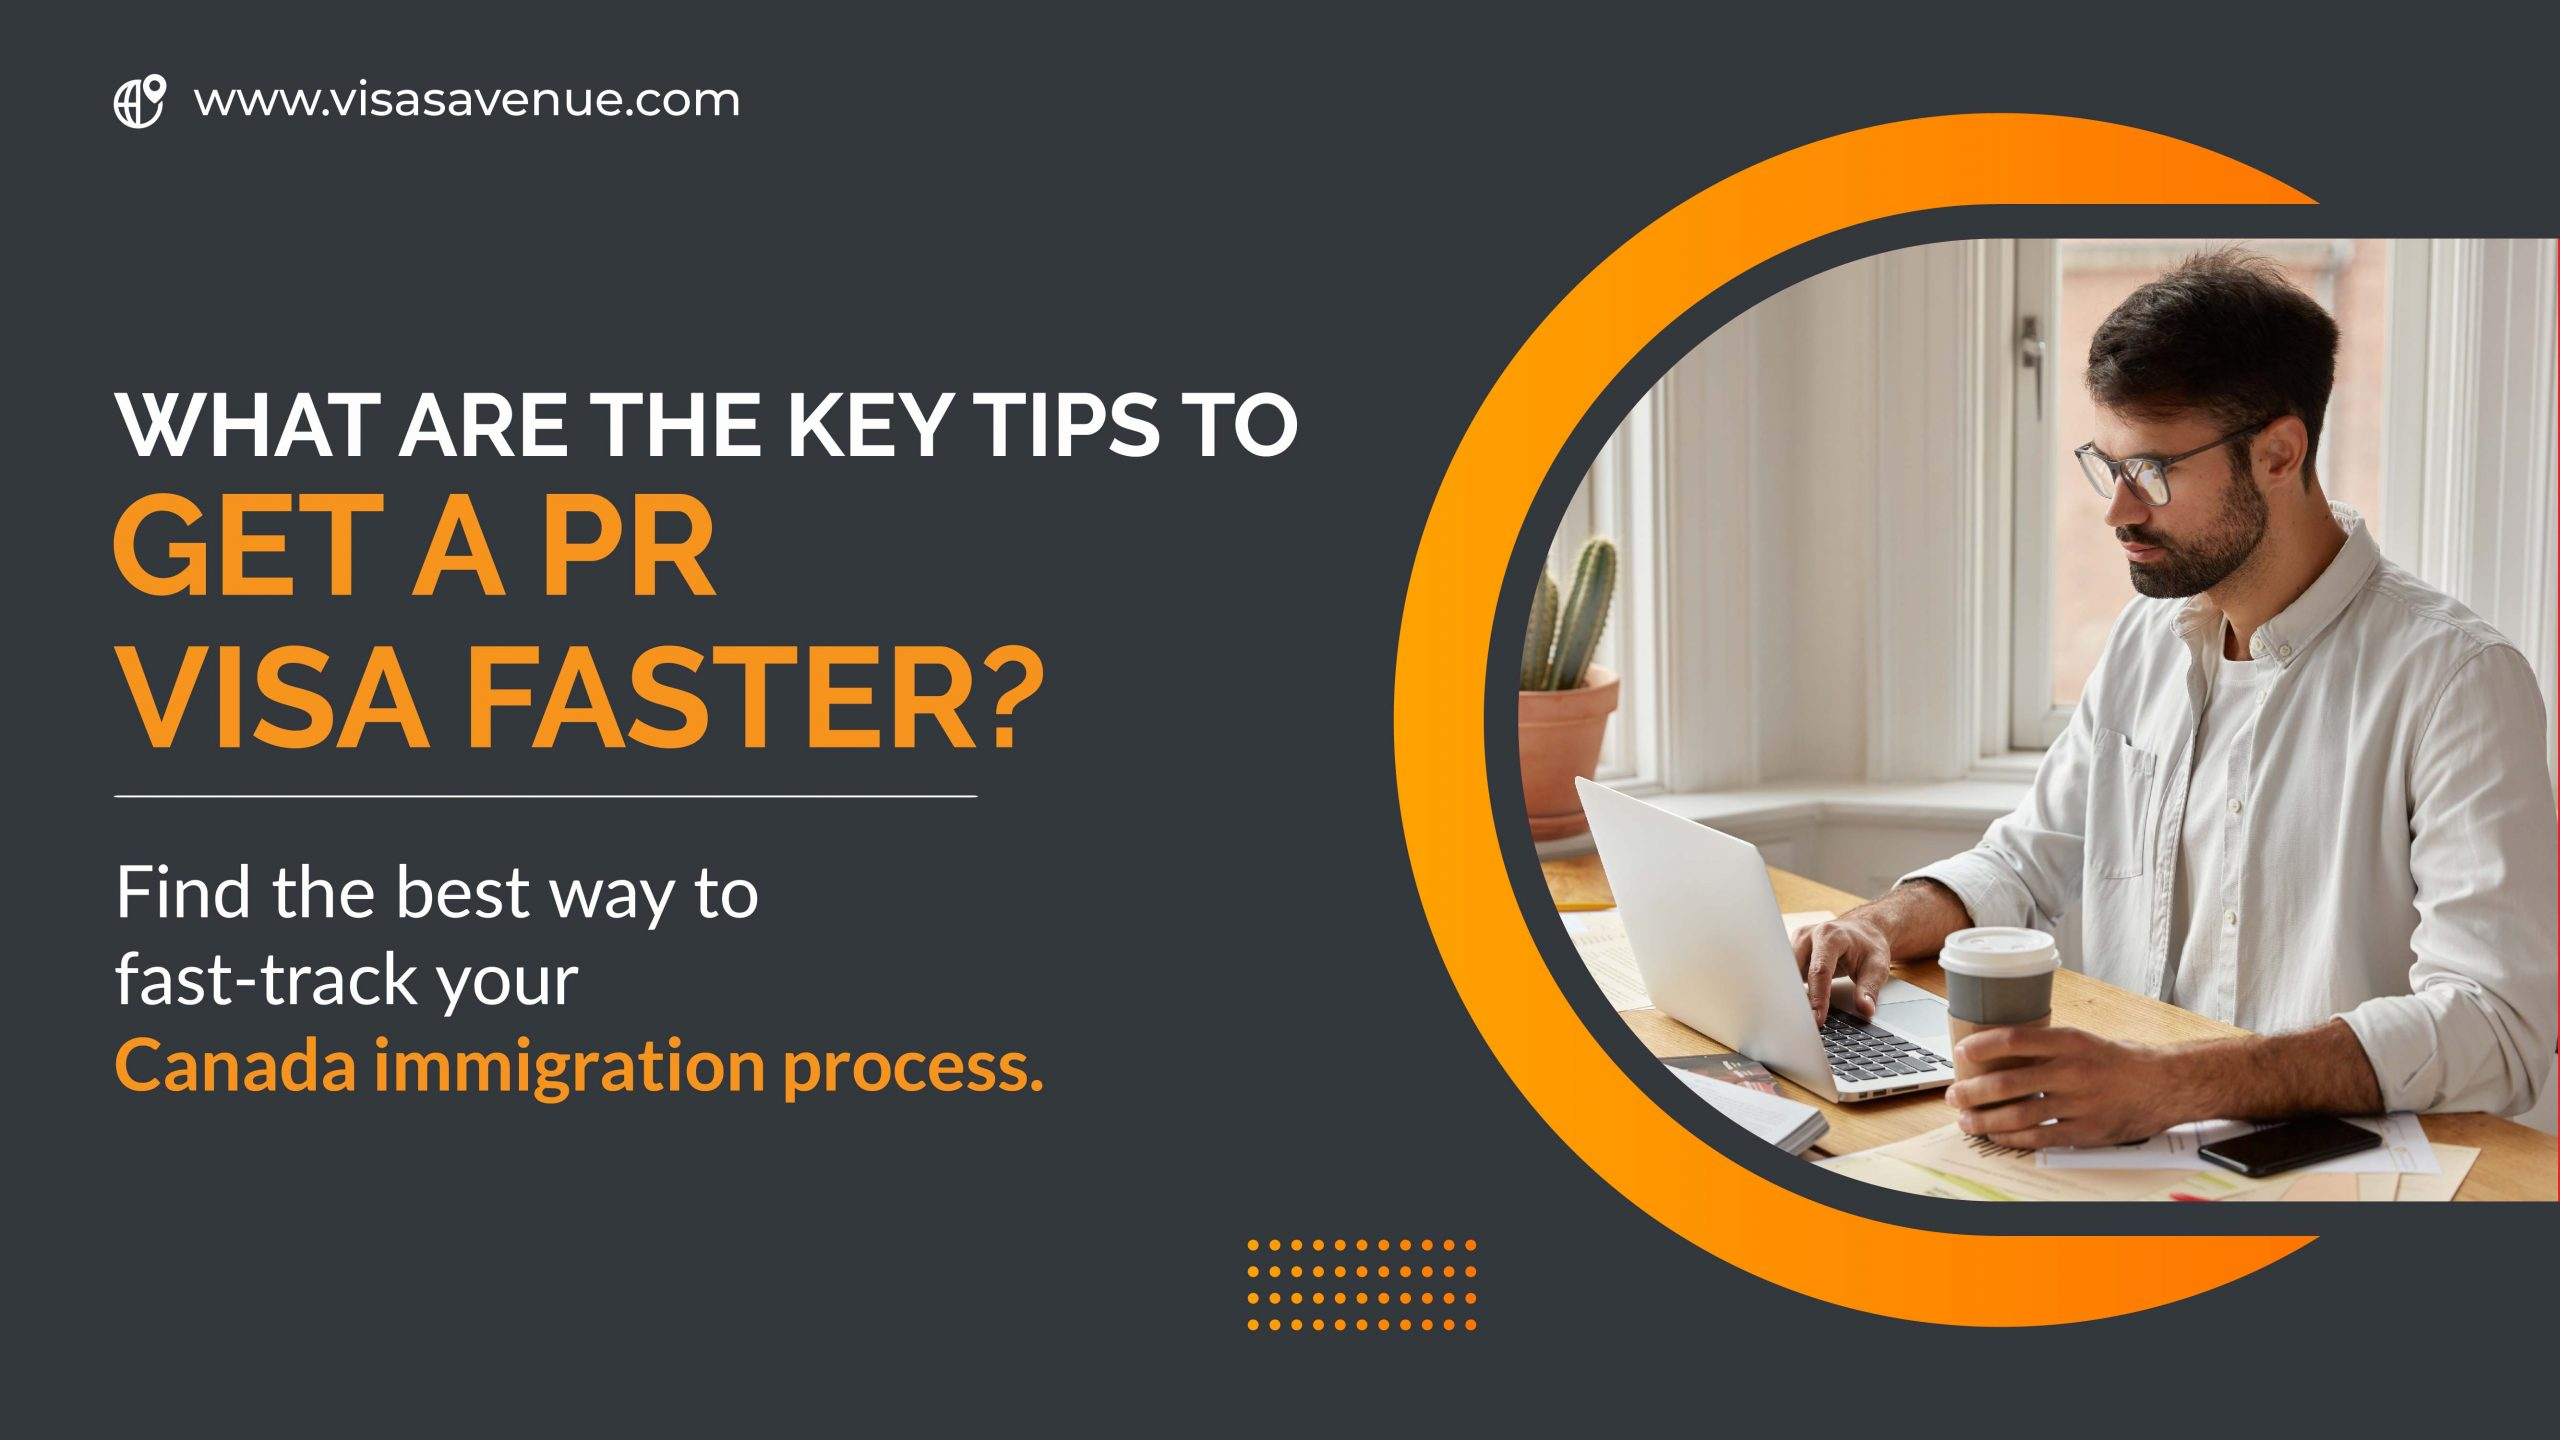 What are the Key Tips to Get PR Visa Faster?